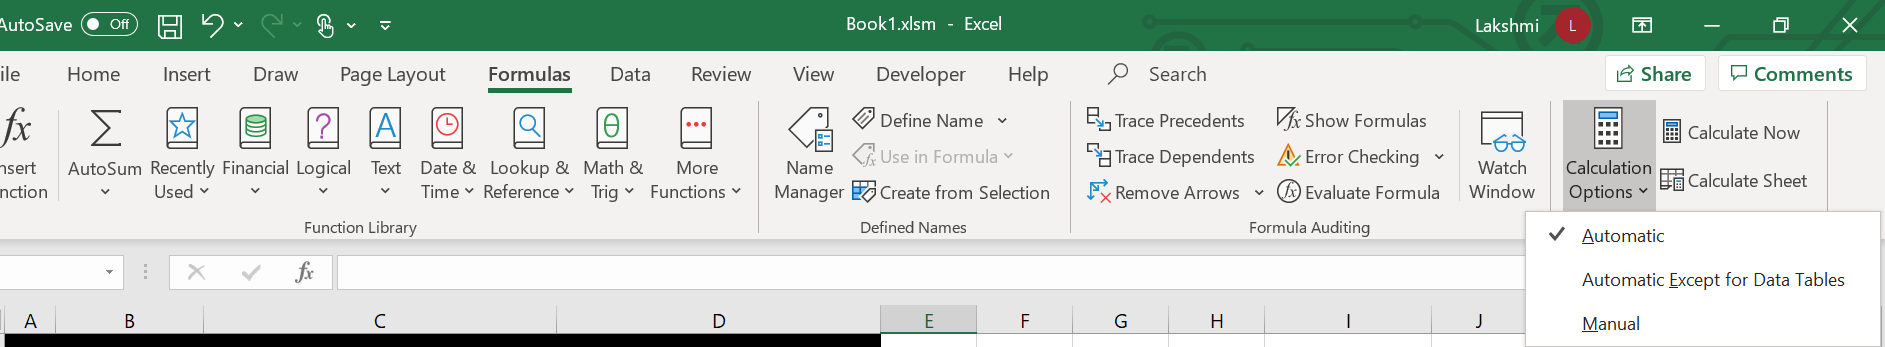 Caclulation options in the formula menu of Excel